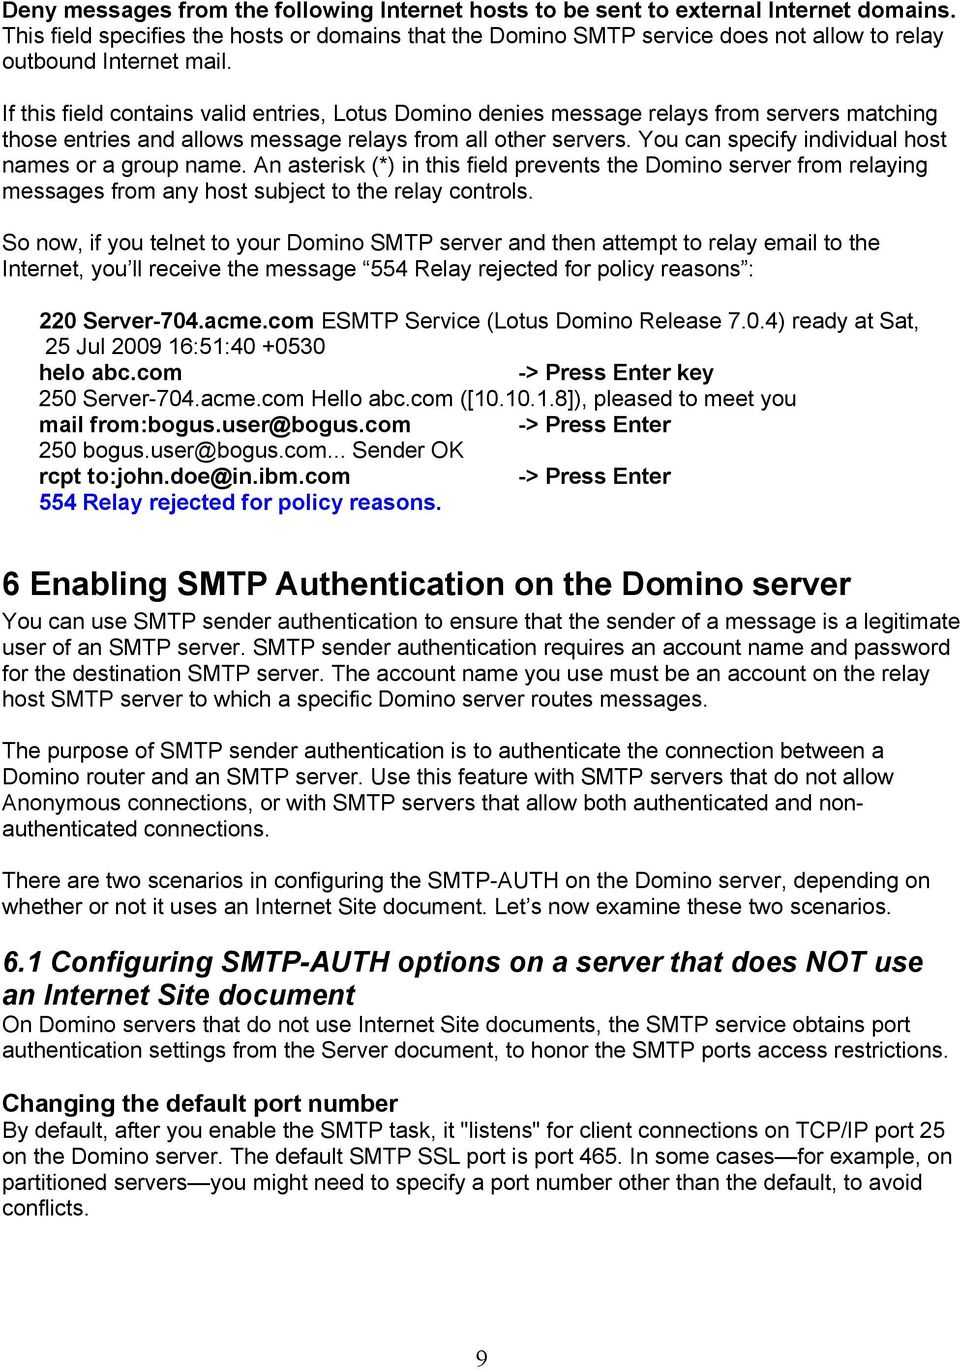 Understanding Smtp Authentication And Securing Your Ibm Lotus Domino